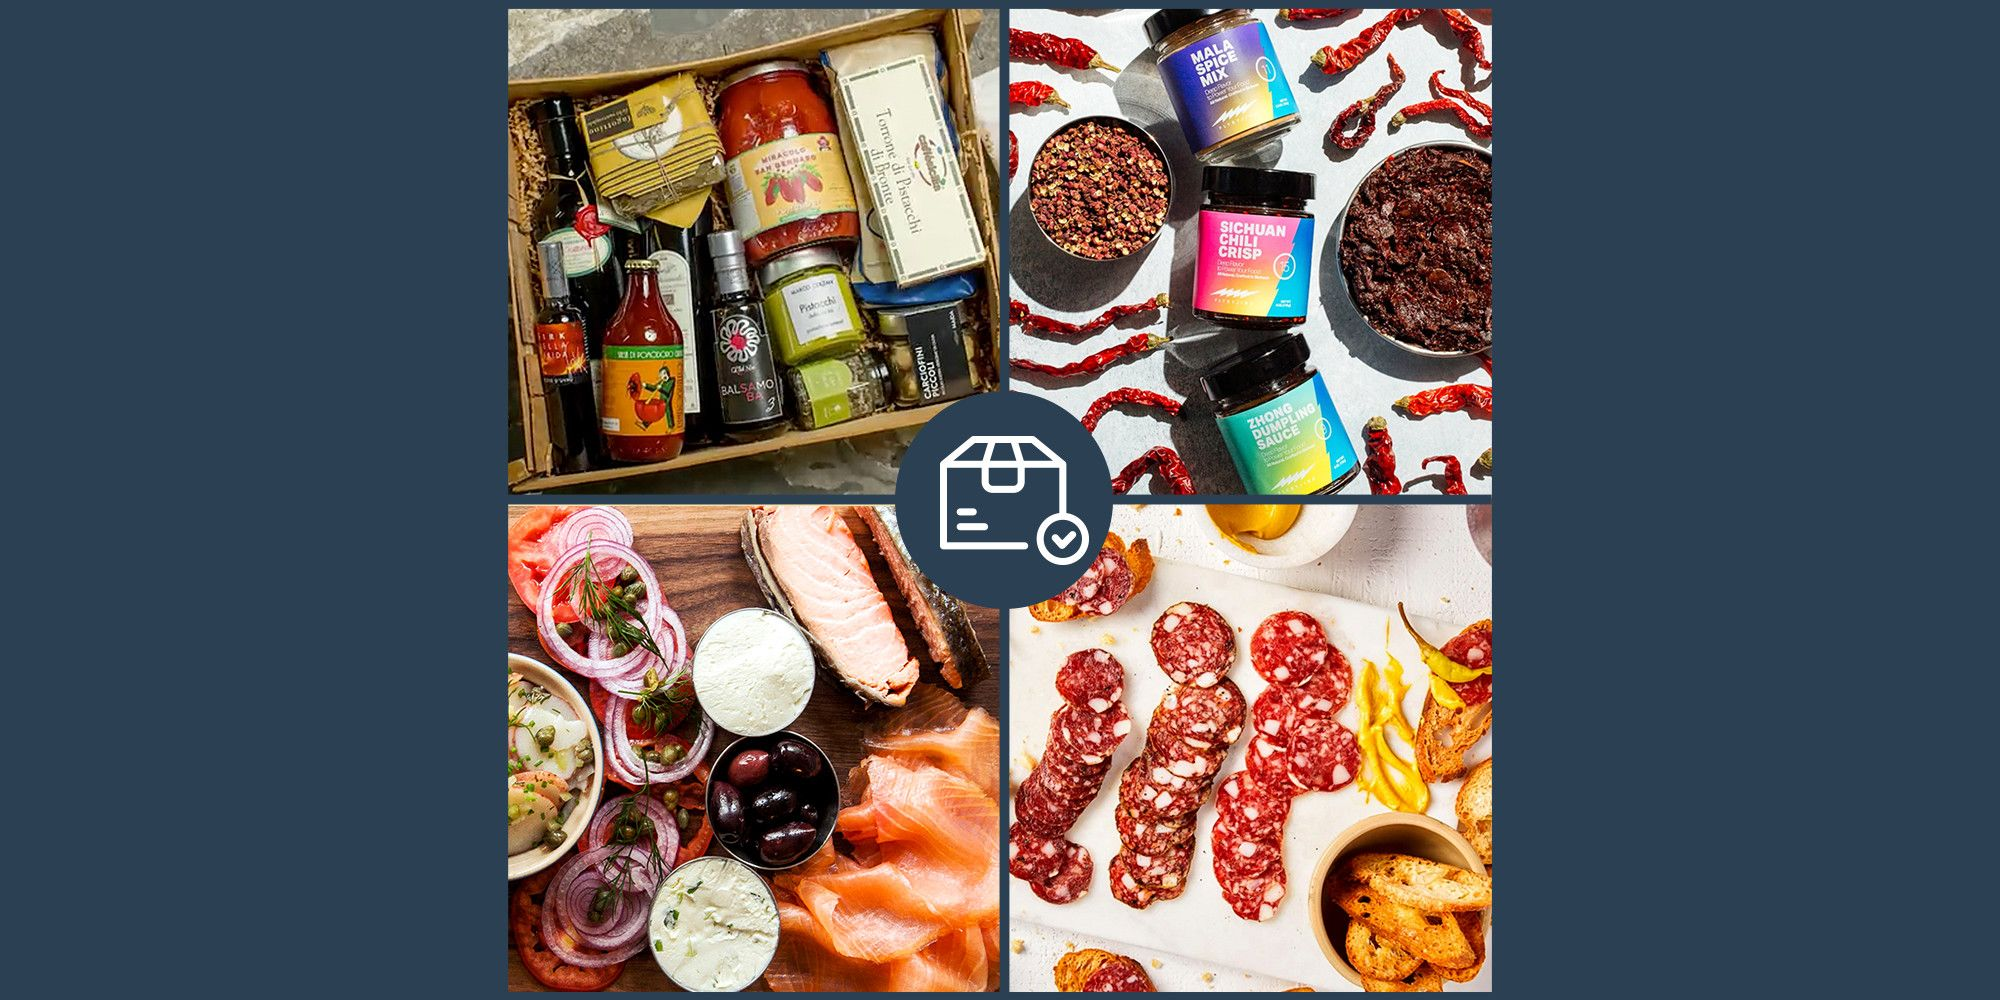 12 Mail-Order Food Sites That'll Help You Pack Your Kitchen With Interesting Ingredients